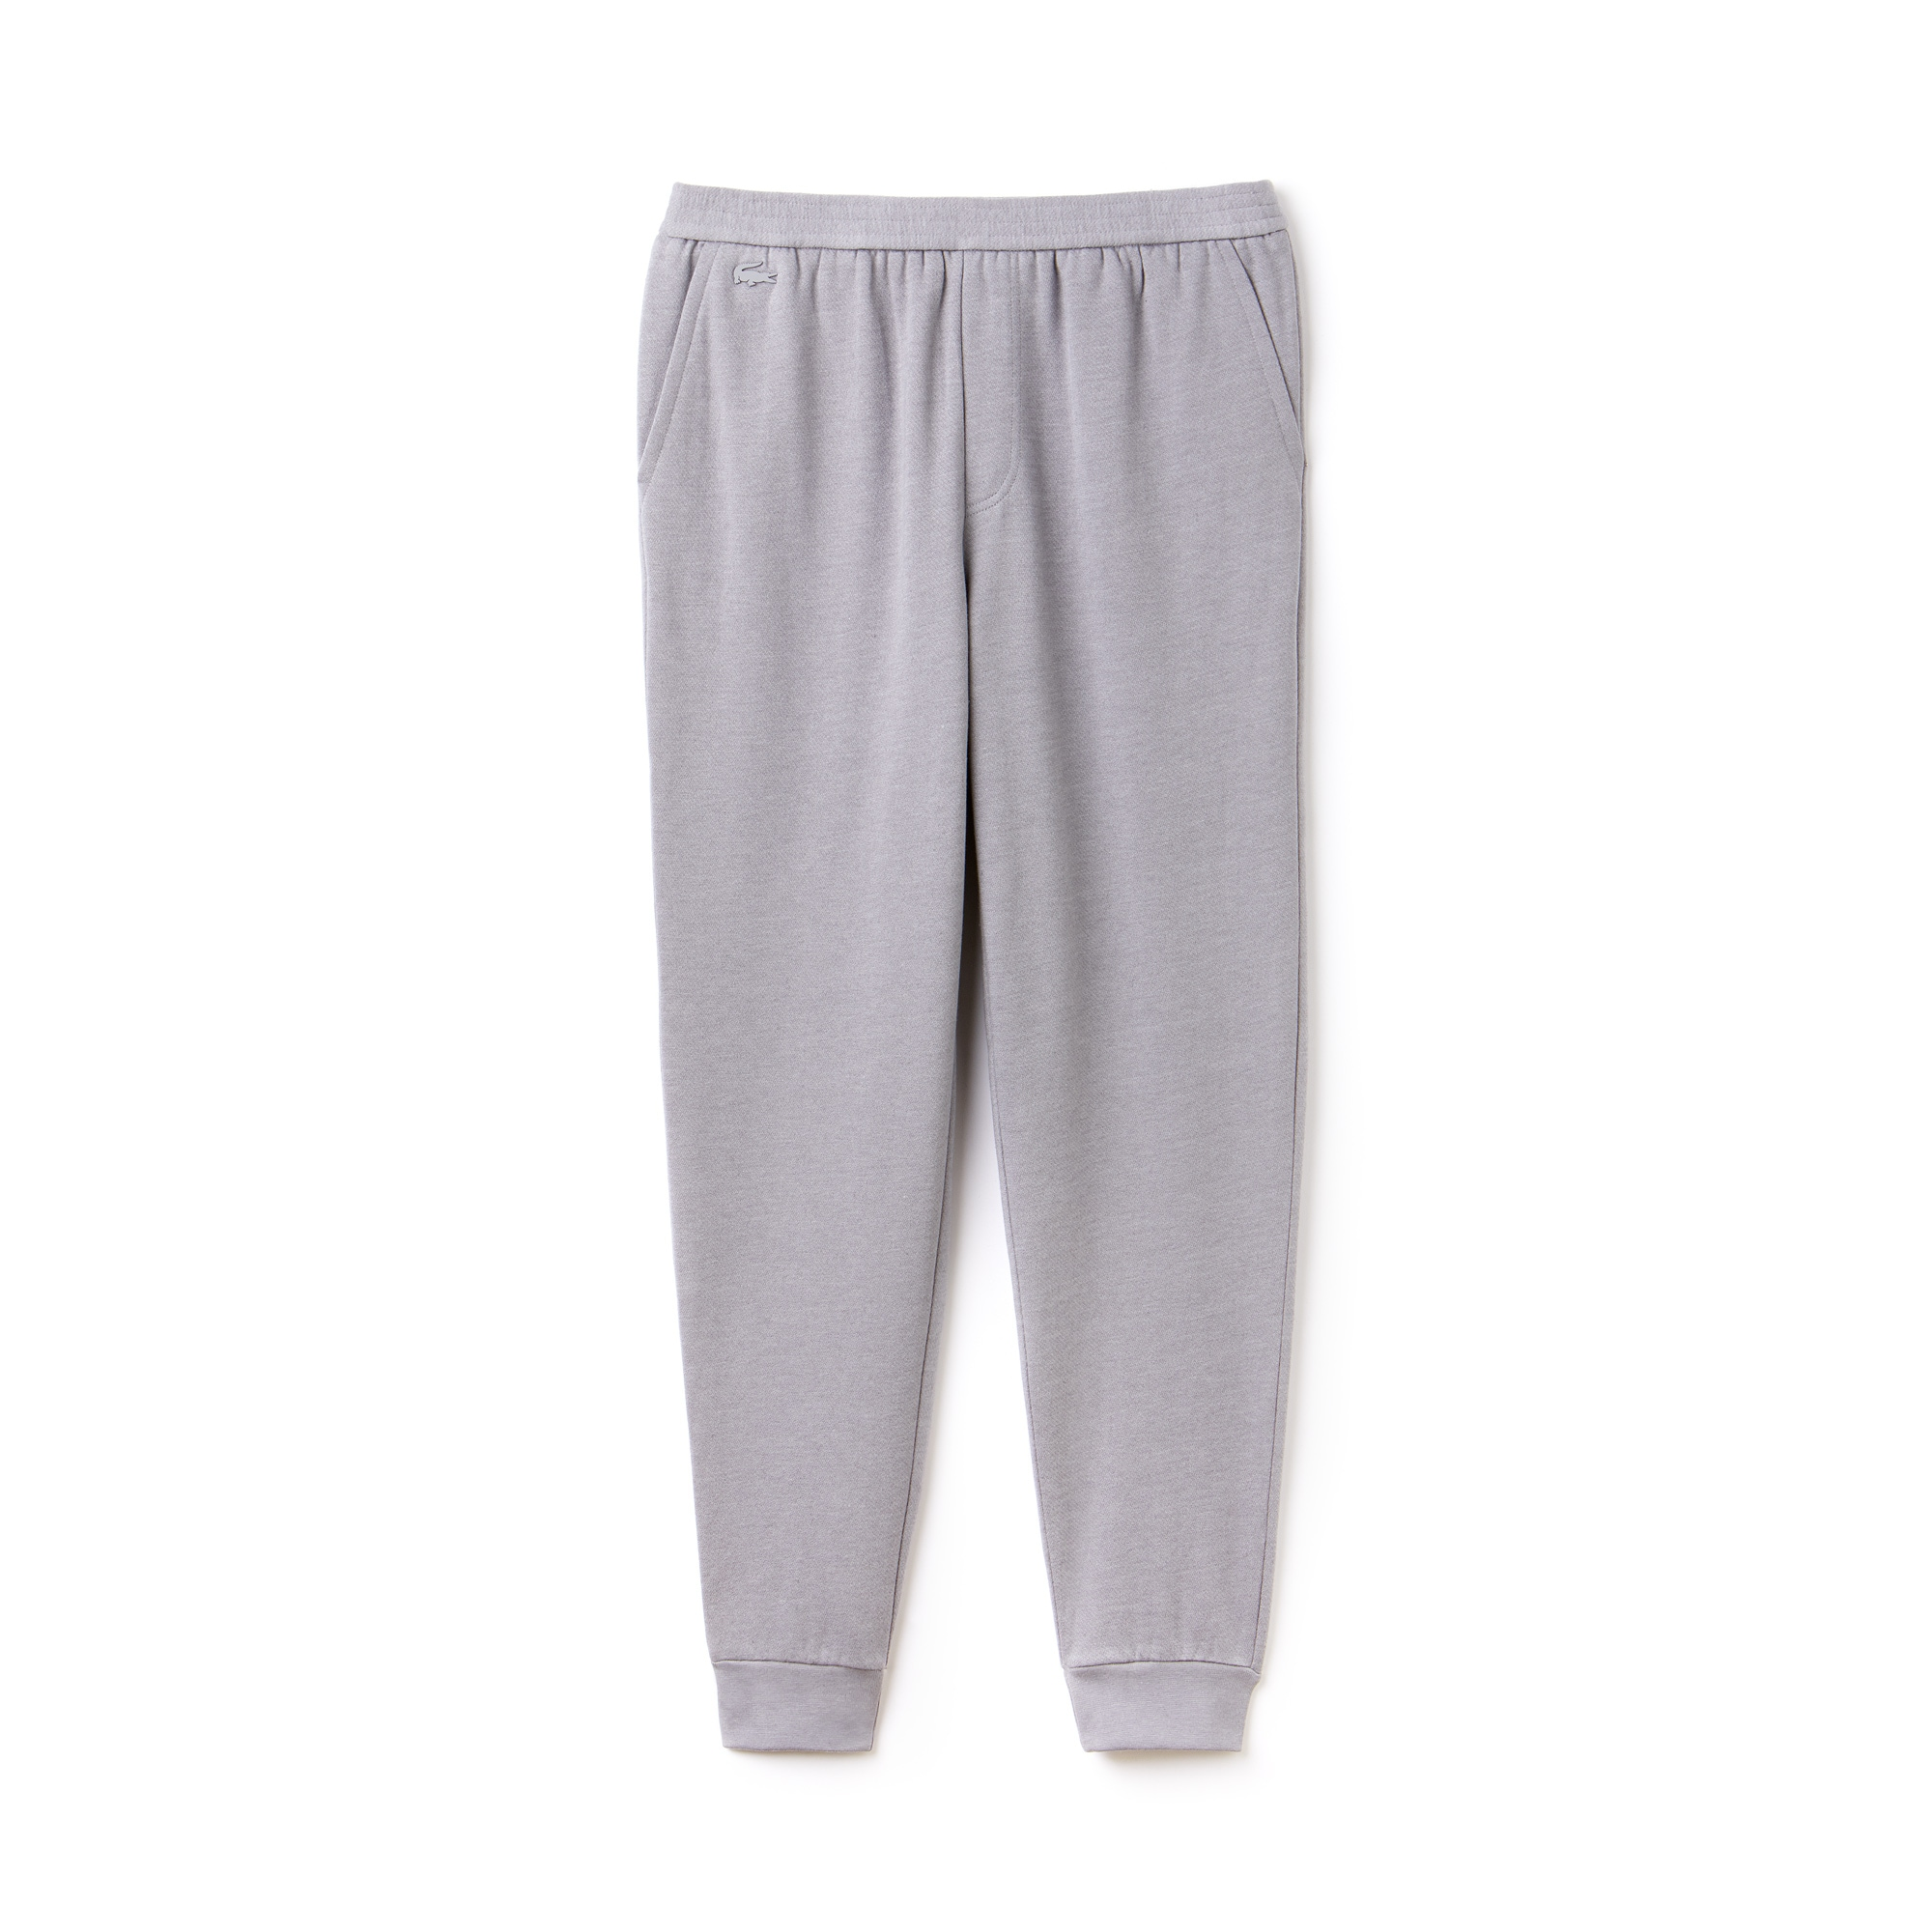 Men's Motion Cotton And Wool Fleece Sweatpants